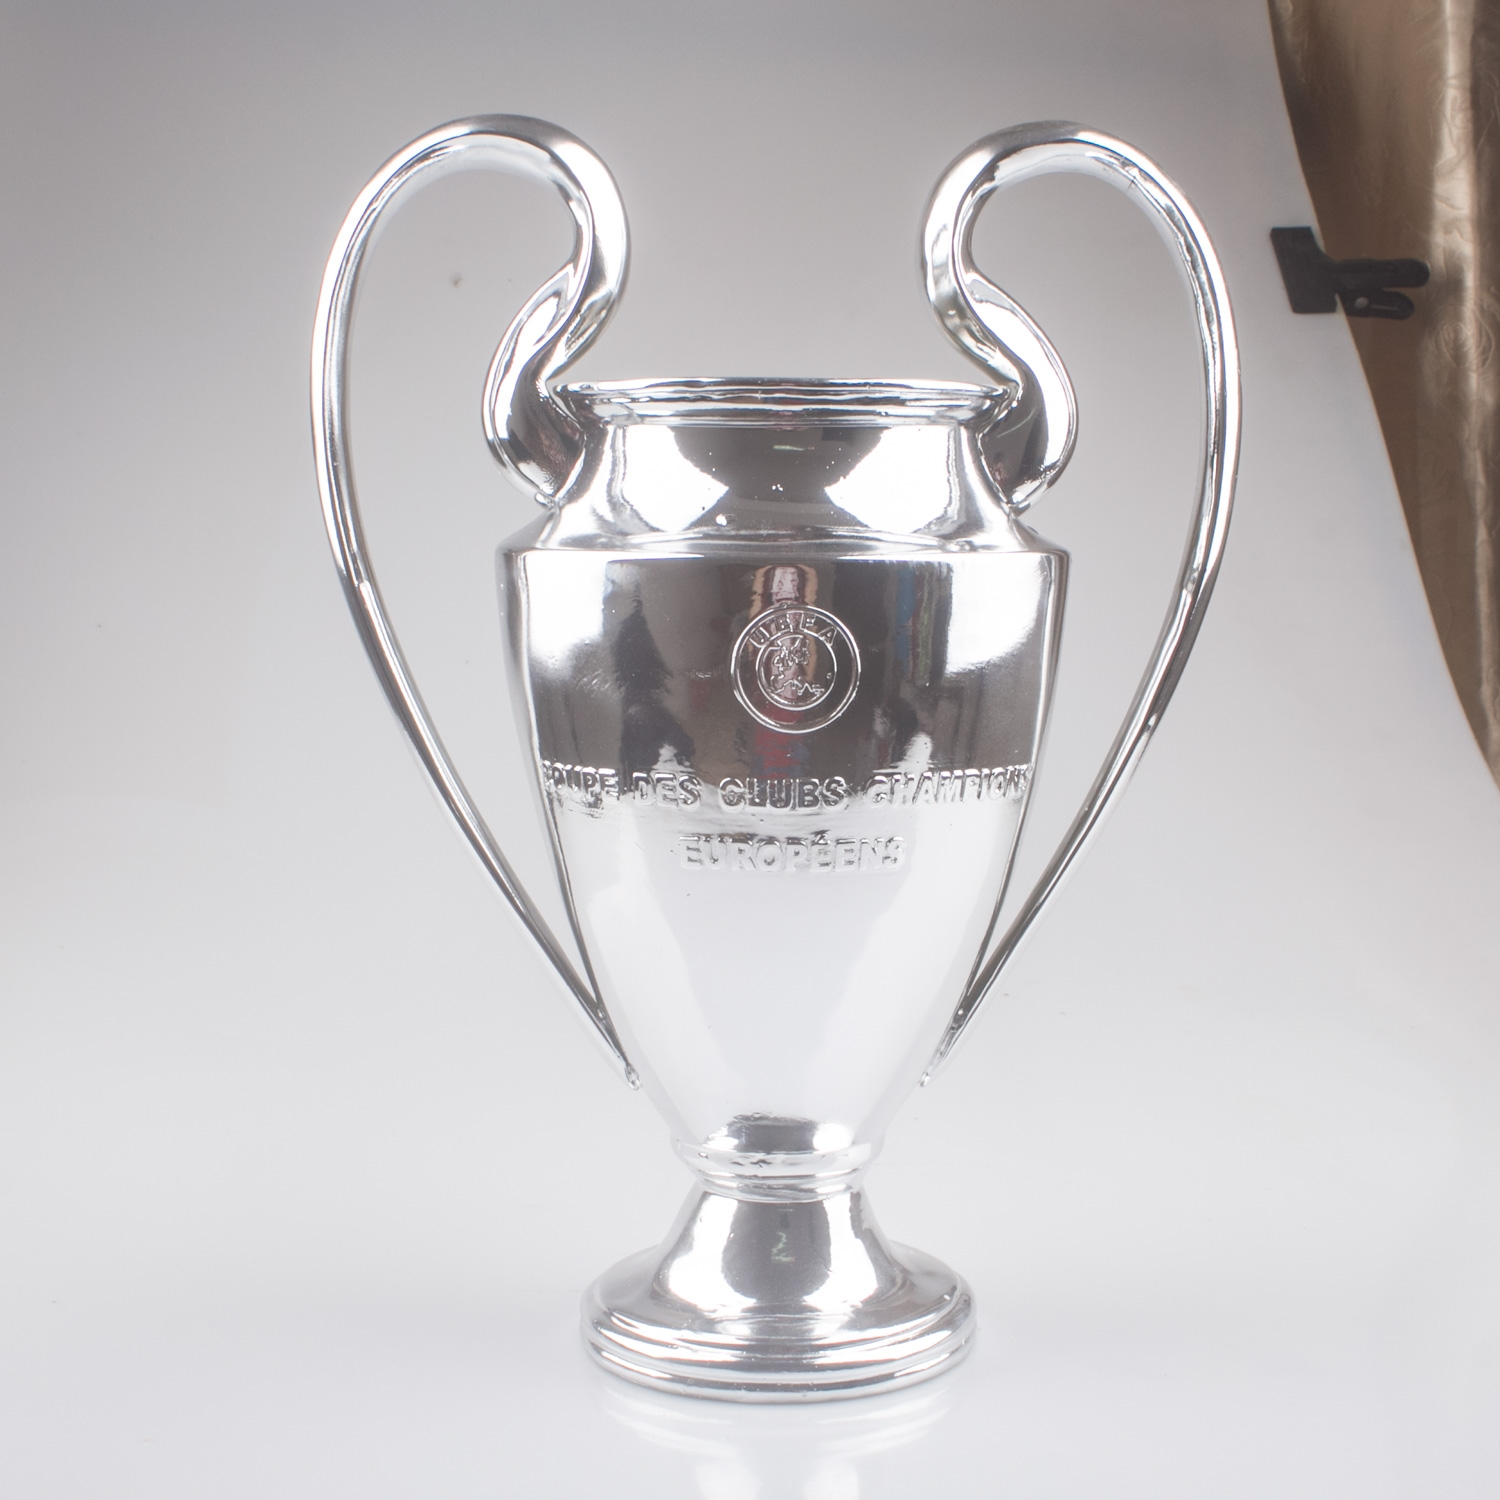 64 90 Buy Now Http Ali9rb Worldwells Pw Go Php T 32720873684 Free Shipping 30cm Big Ear Cup Champions League European Football Trophy Cup Stuff To Buy